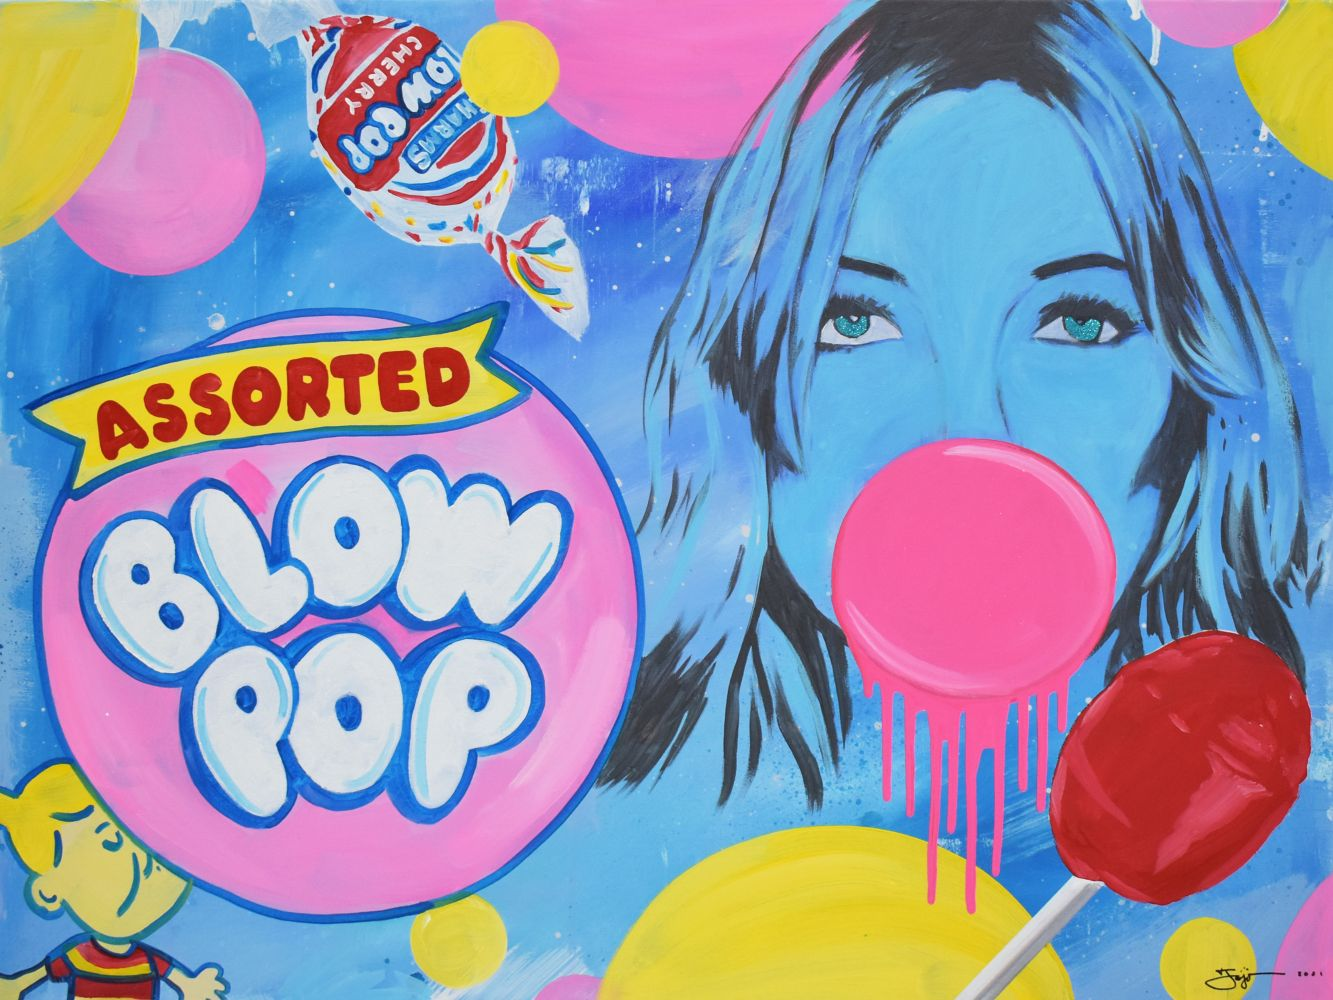 Jojo Anavim, Blow Pop, 2020, Acrylic on canvas, 30 x 40 inches, For sale at Manolis Projects Art Gallery, Miami Fl